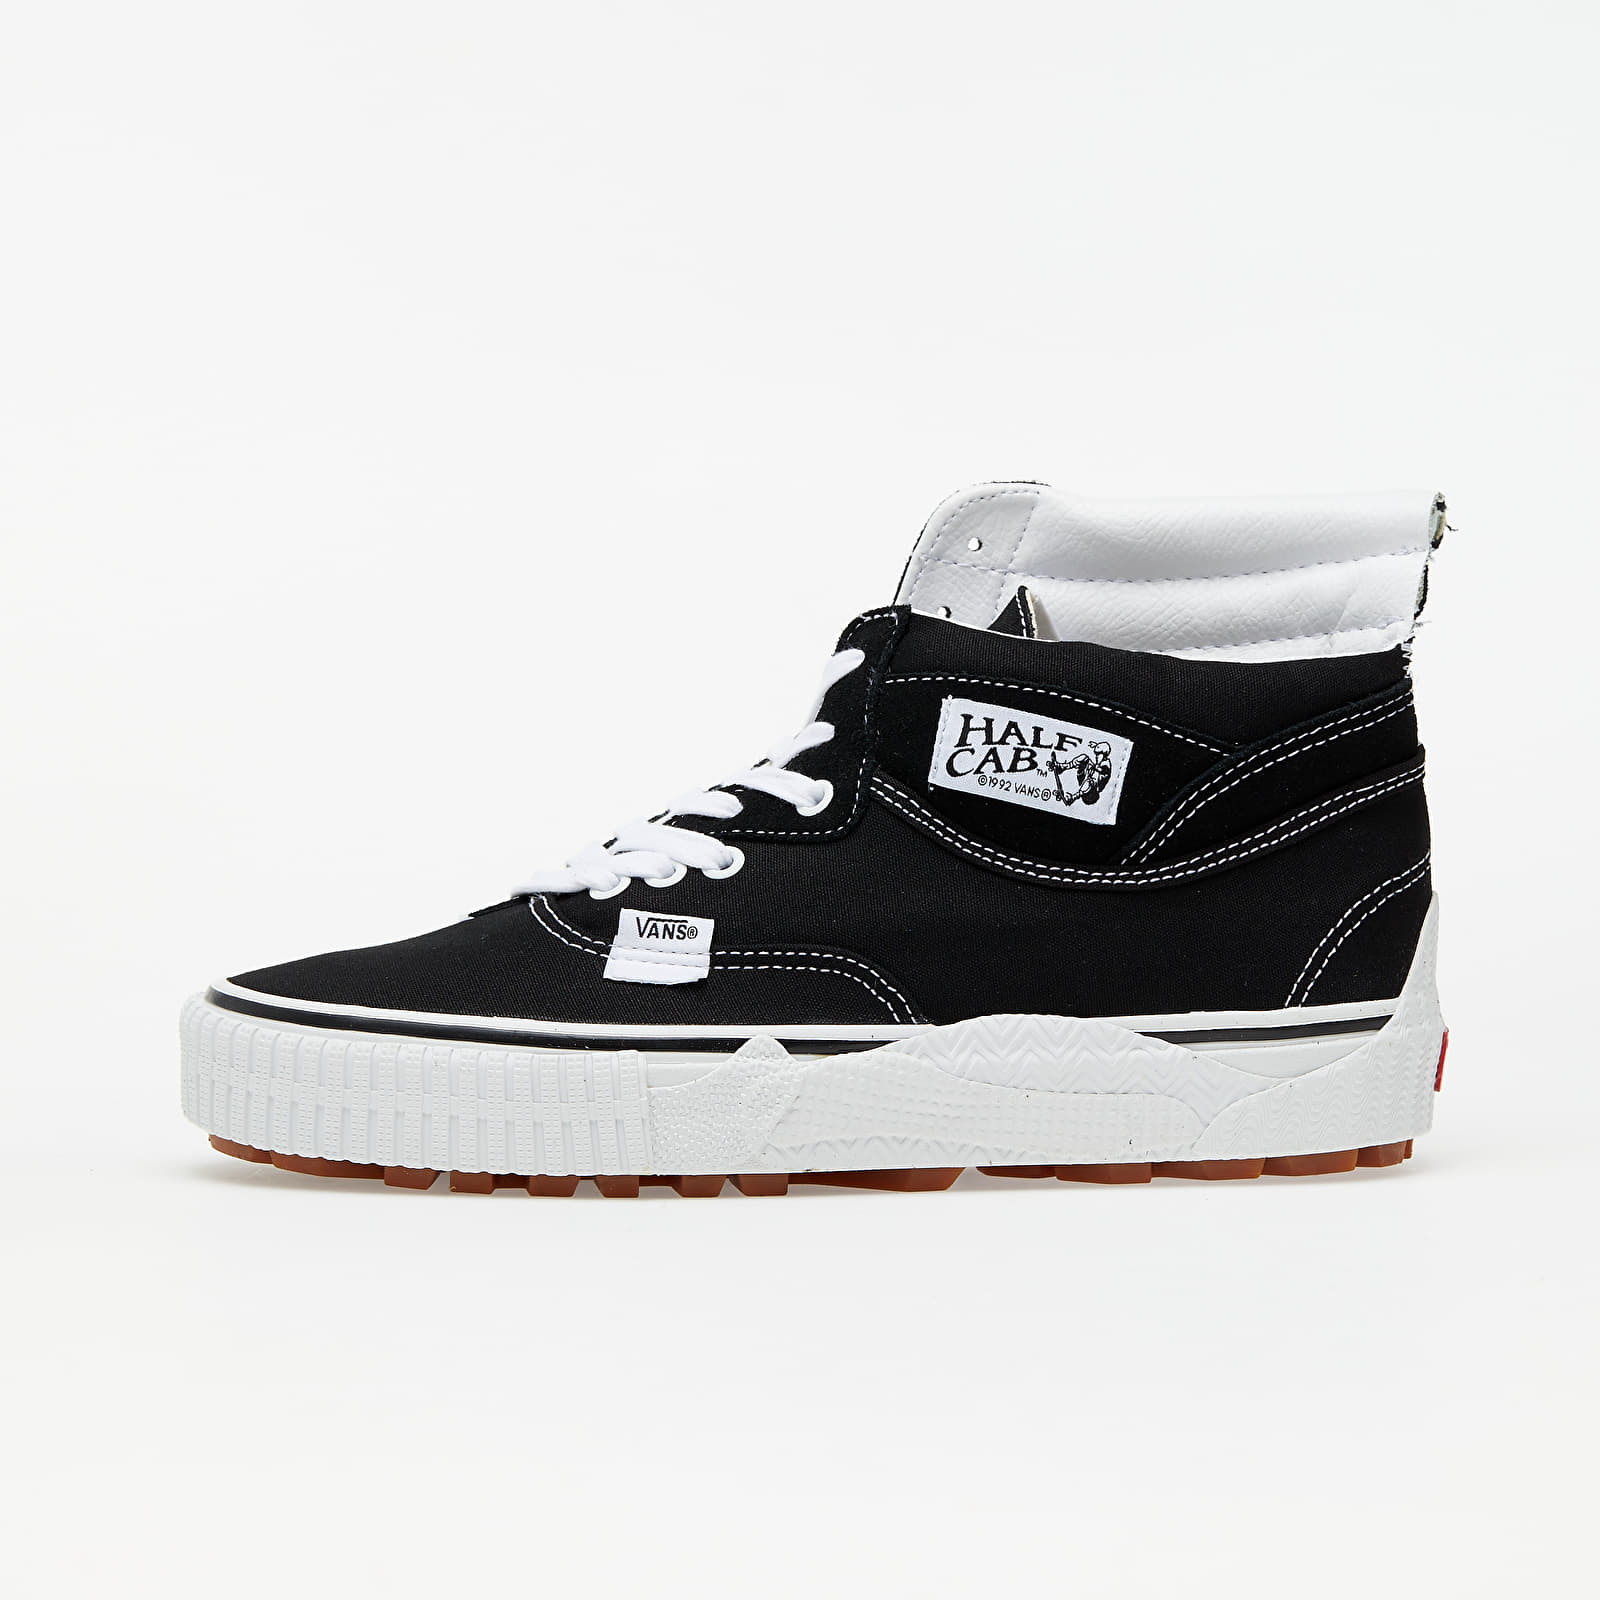 Ανδρικά παπούτσια Vans Cap Mash Hi LX (Suede/ Canvas) Black/ White